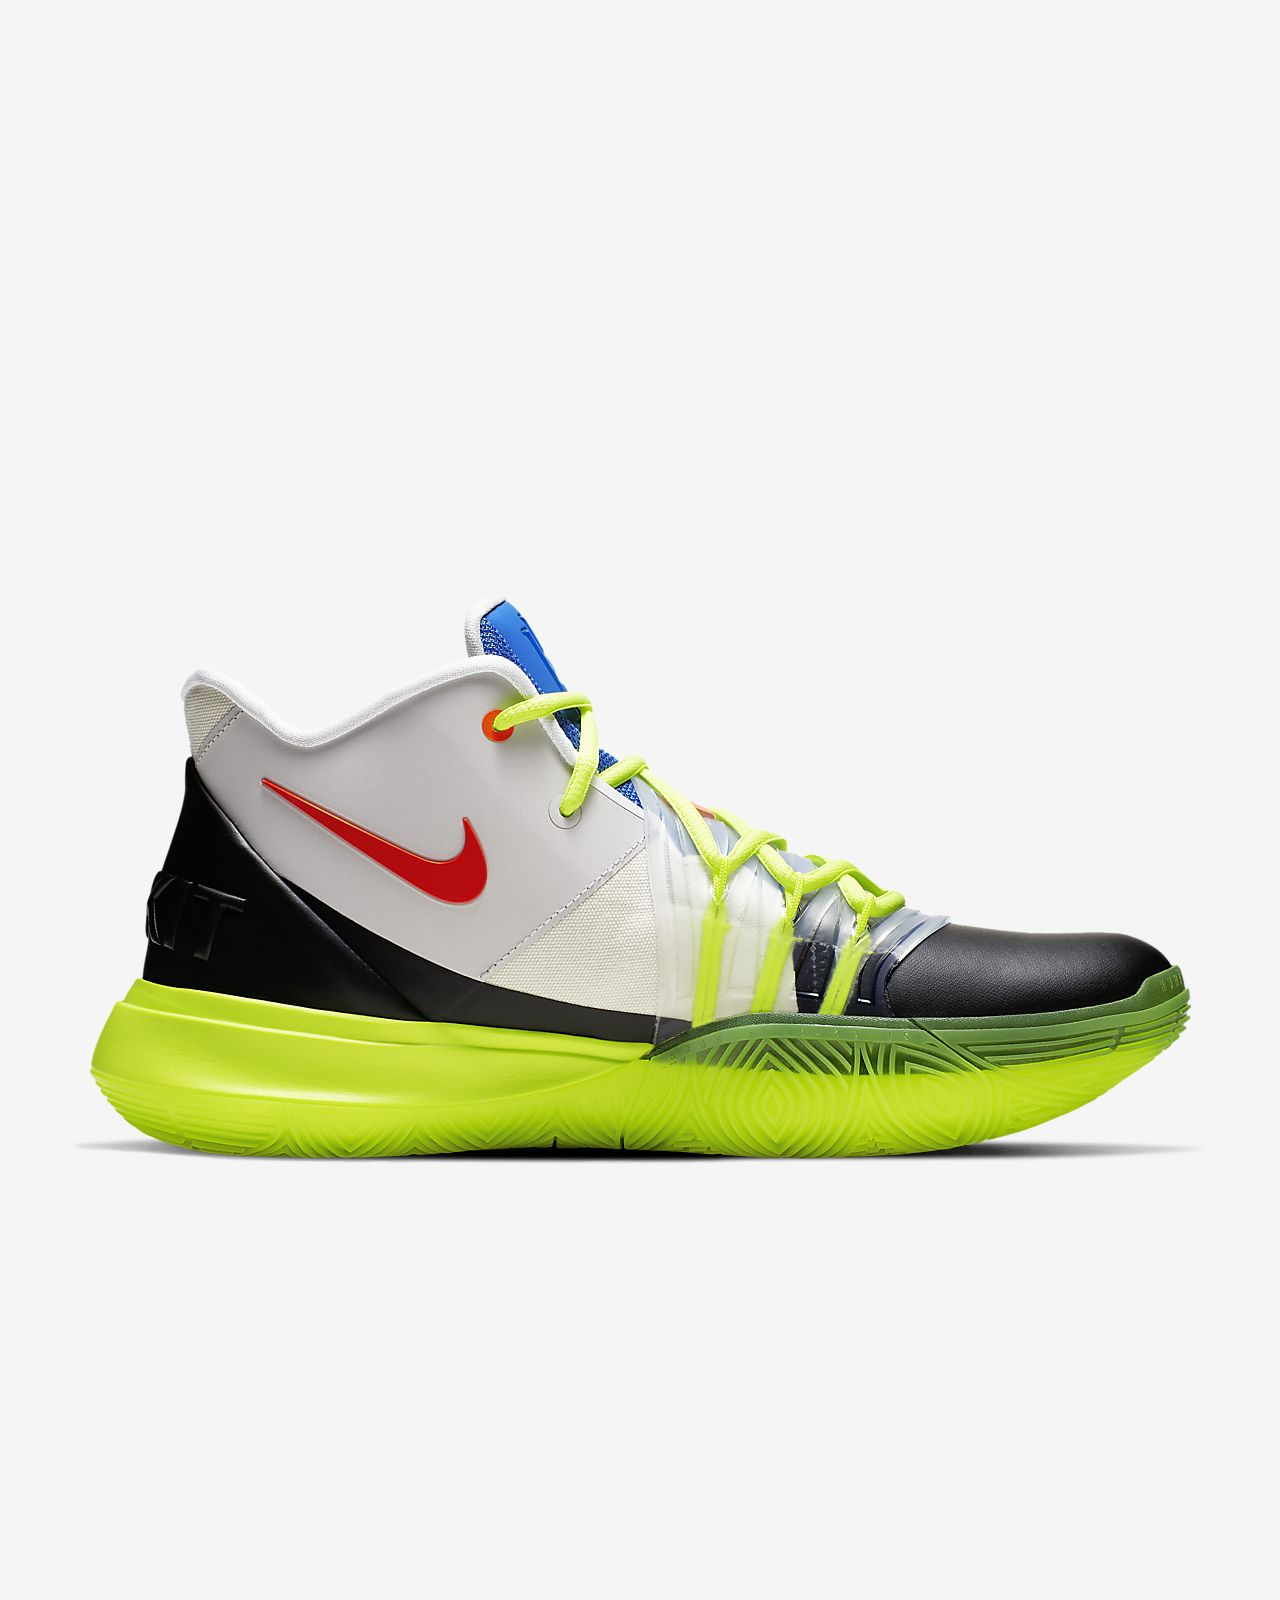 the latest a90e3 f1f2c ... Kyrie 5 x ROKIT All Star Basketball Shoe